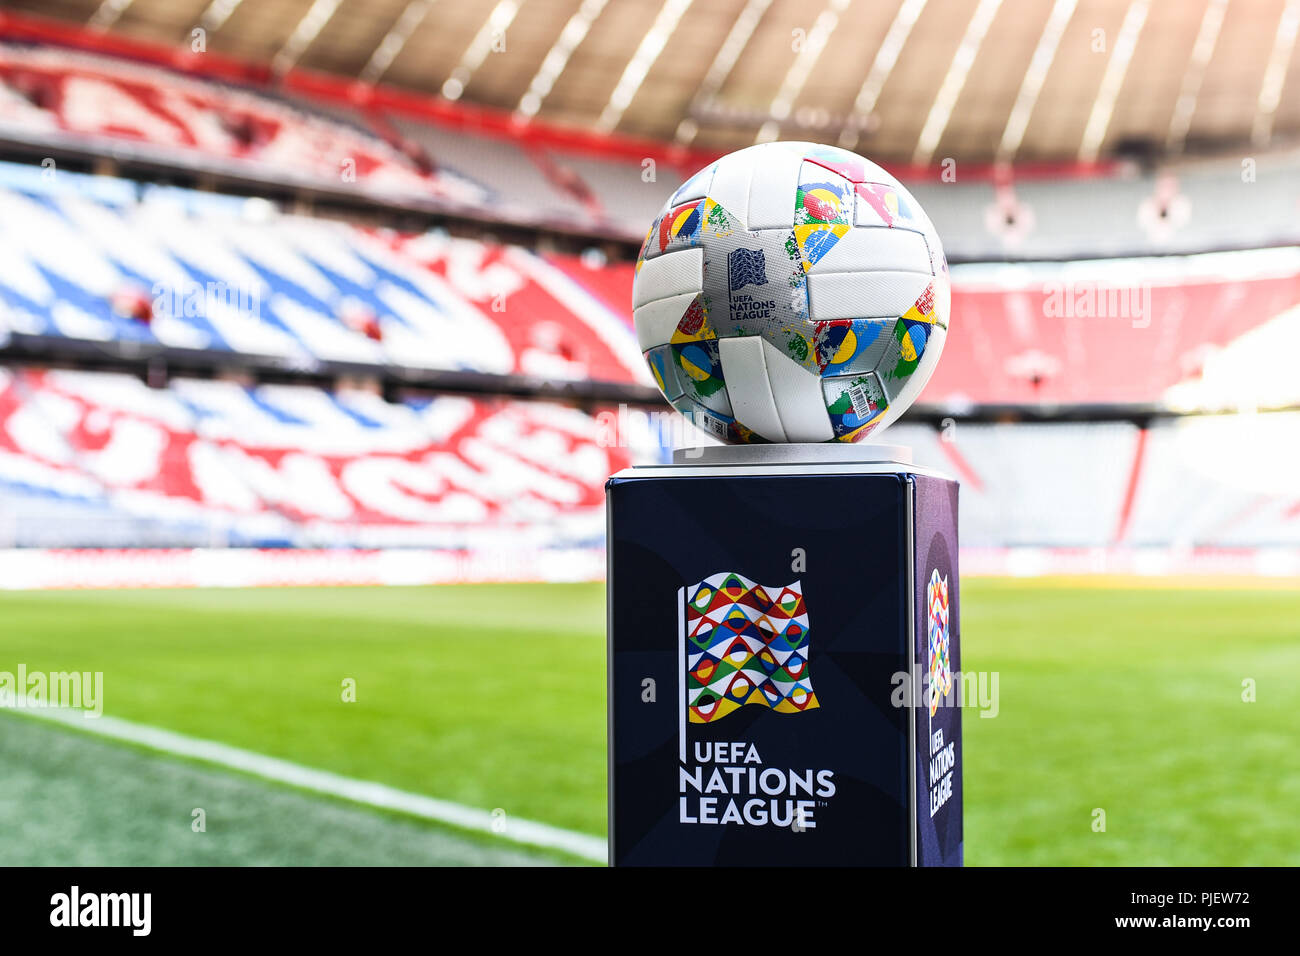 Munich Deutschland 06th Sep 2018 Adidas Uefa Nations League Omb Match Ball With Allianz Arena In The Background Ges Football Uefa Nations League 2018 19 1 Matchday Germany France 06 09 2018 Football Nations League Germany Vs